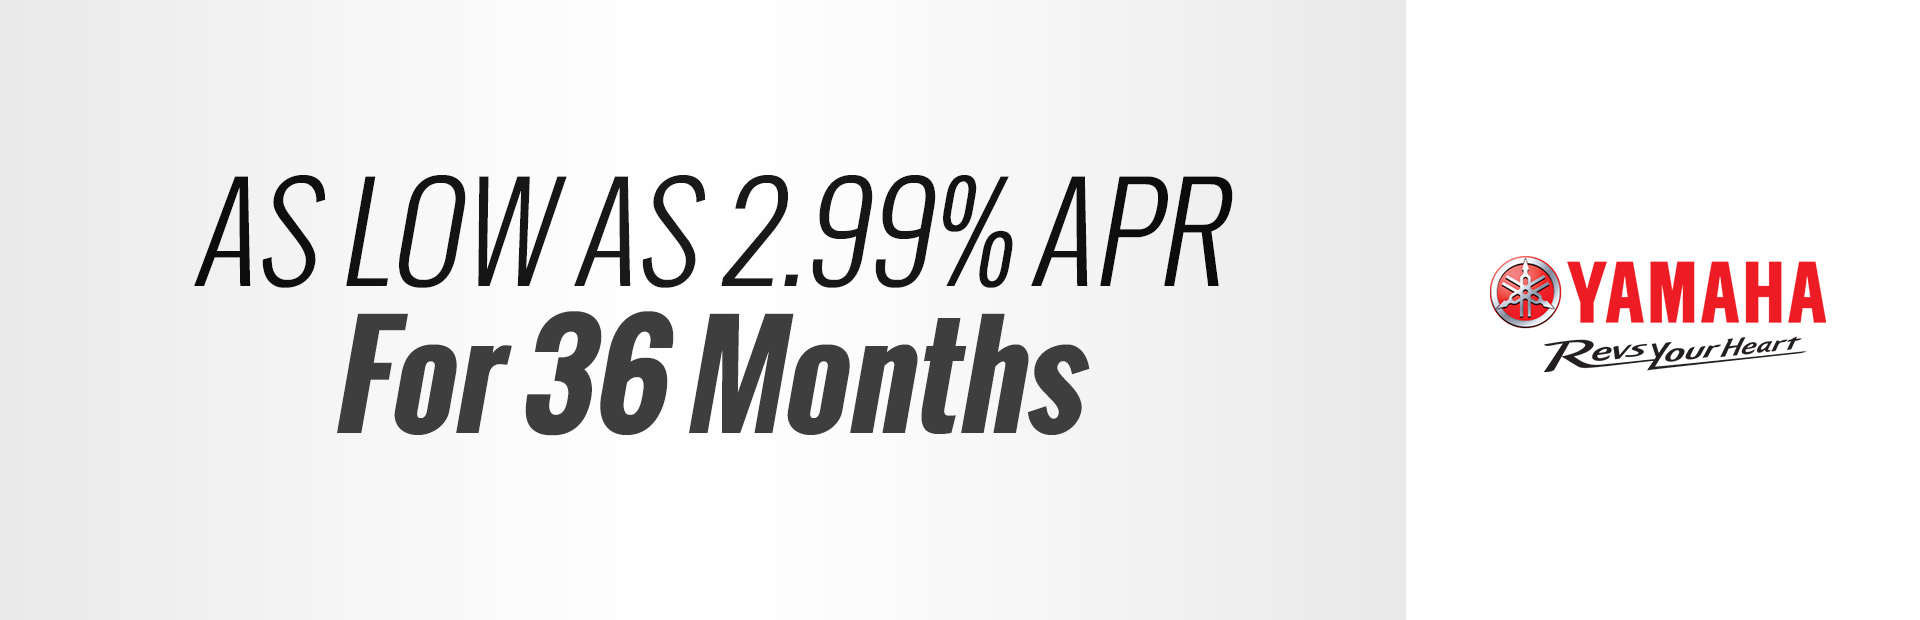 As Low As 2.99% APR for 36 months